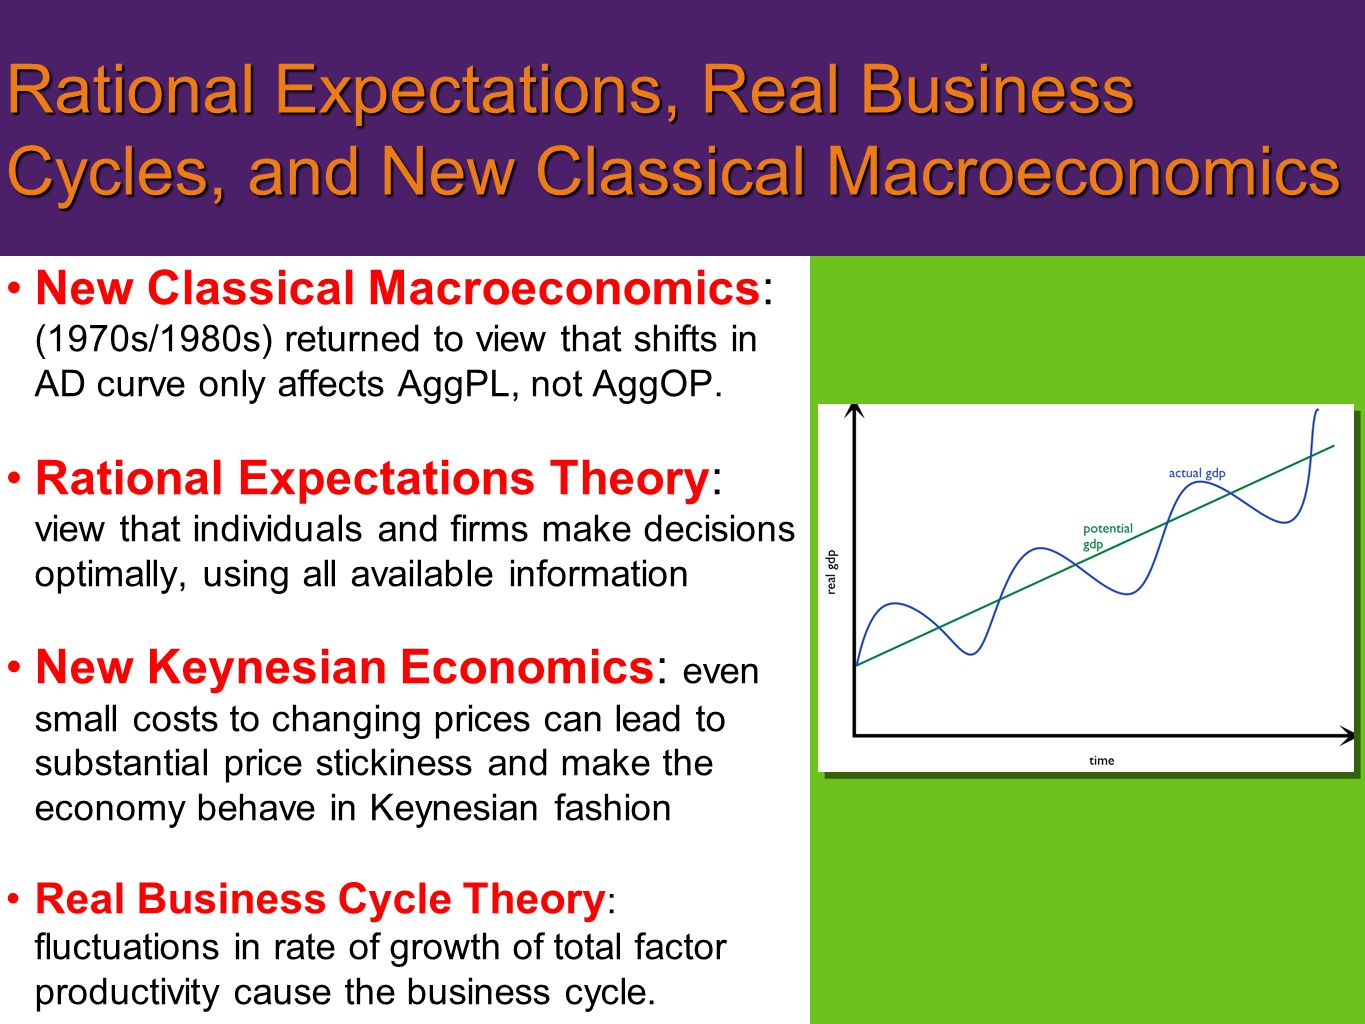 Rational Expectations, Real Business Cycles, and New Classical Macroeconomics